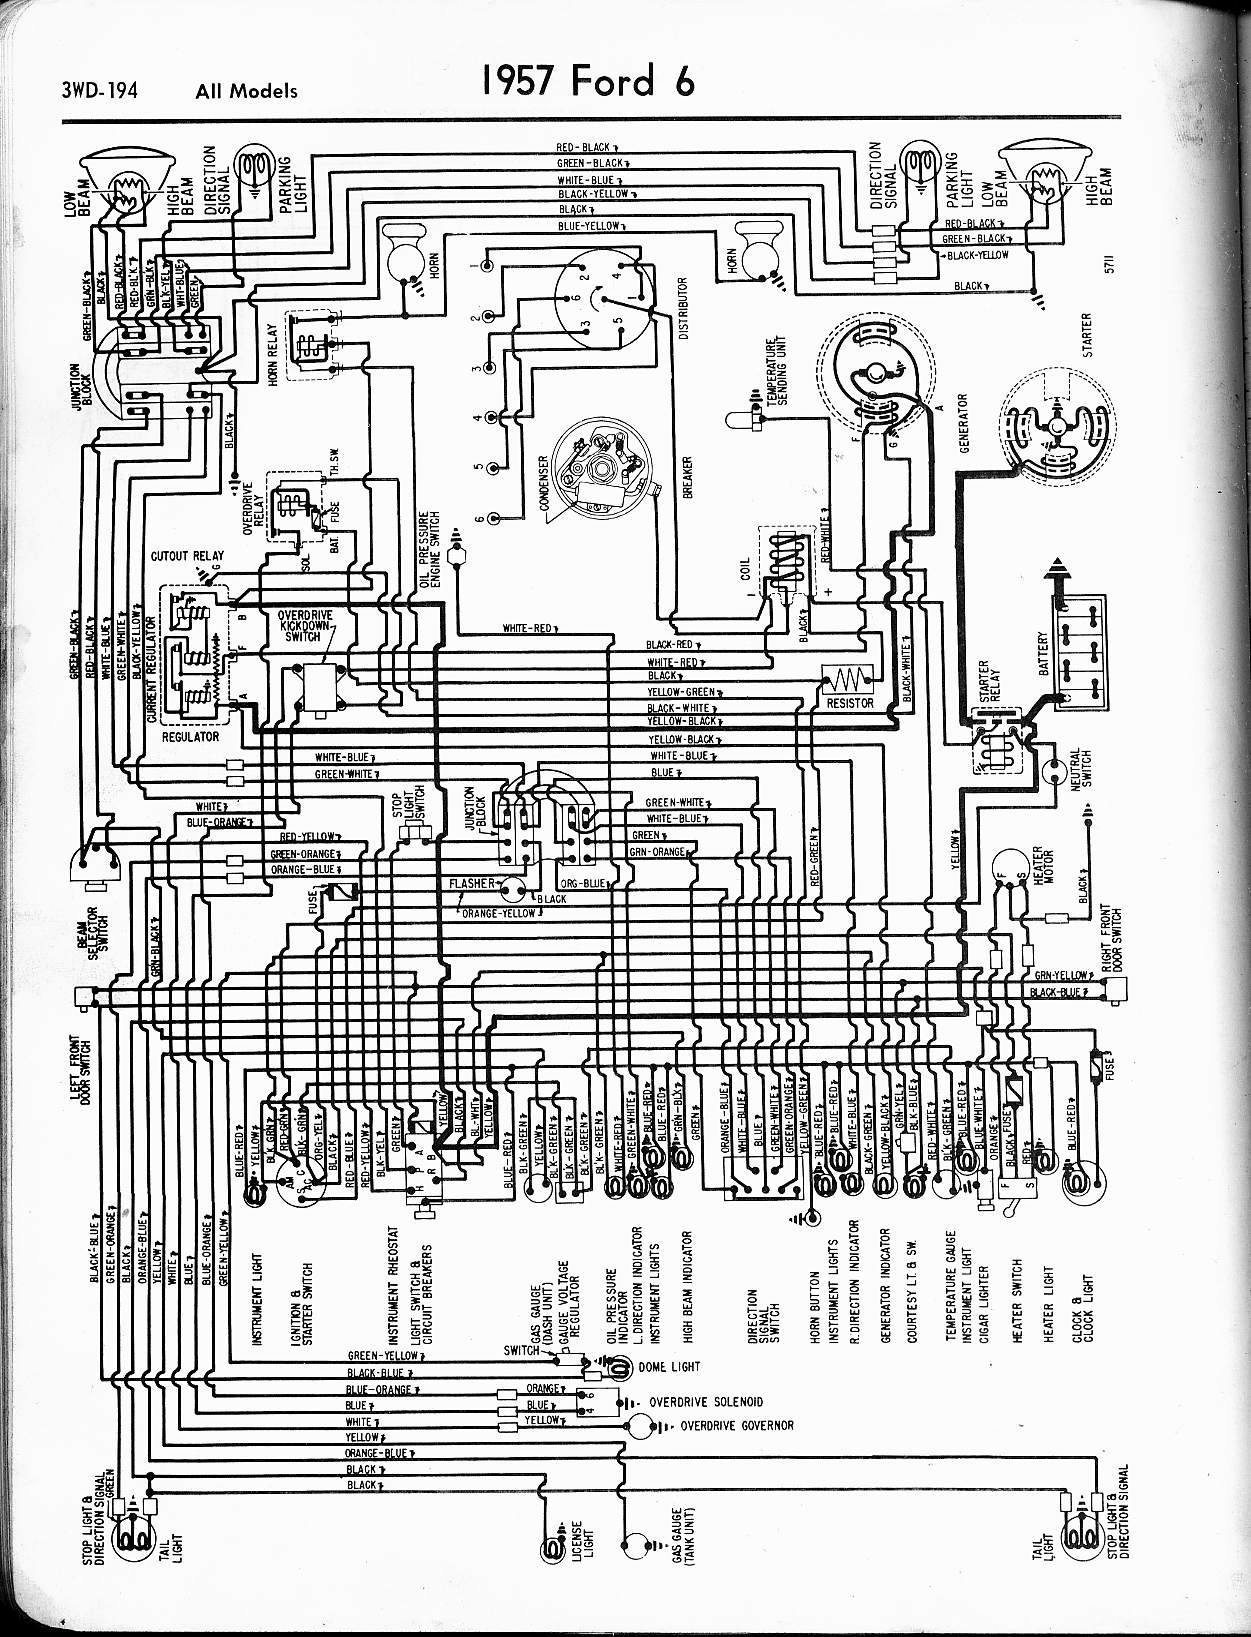 1977 Ford Thunderbird V8 Engine Diagrams Start Building A Wiring Diagram Rh Wizard Com The First 46l 3v